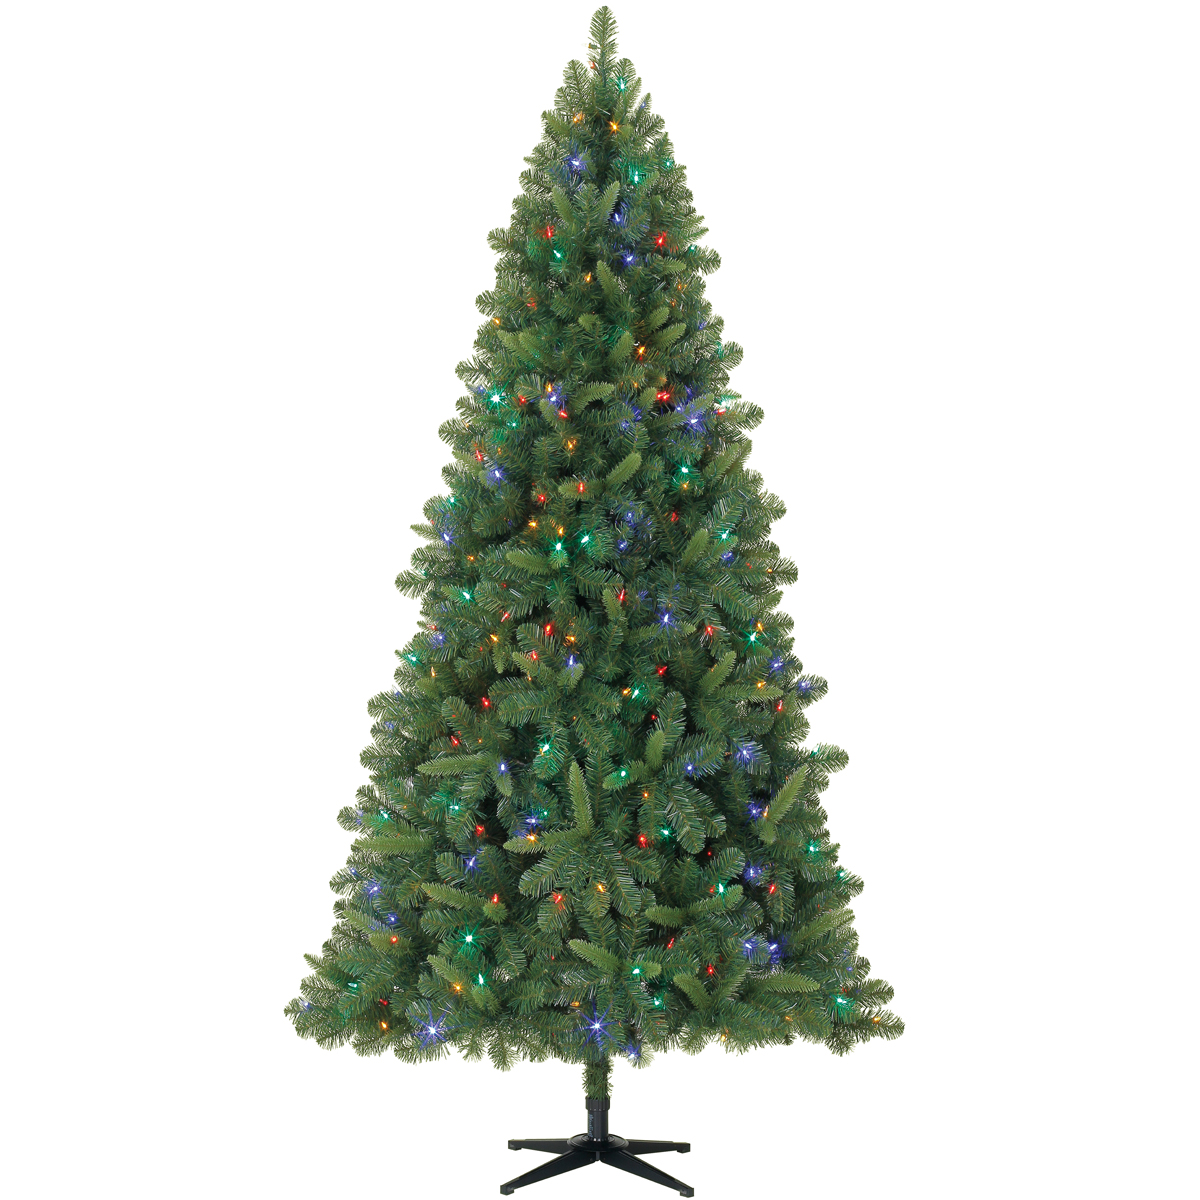 7.5 Ft. Pre-Lit Green Full Kensington Pine Artificial Christmas ...